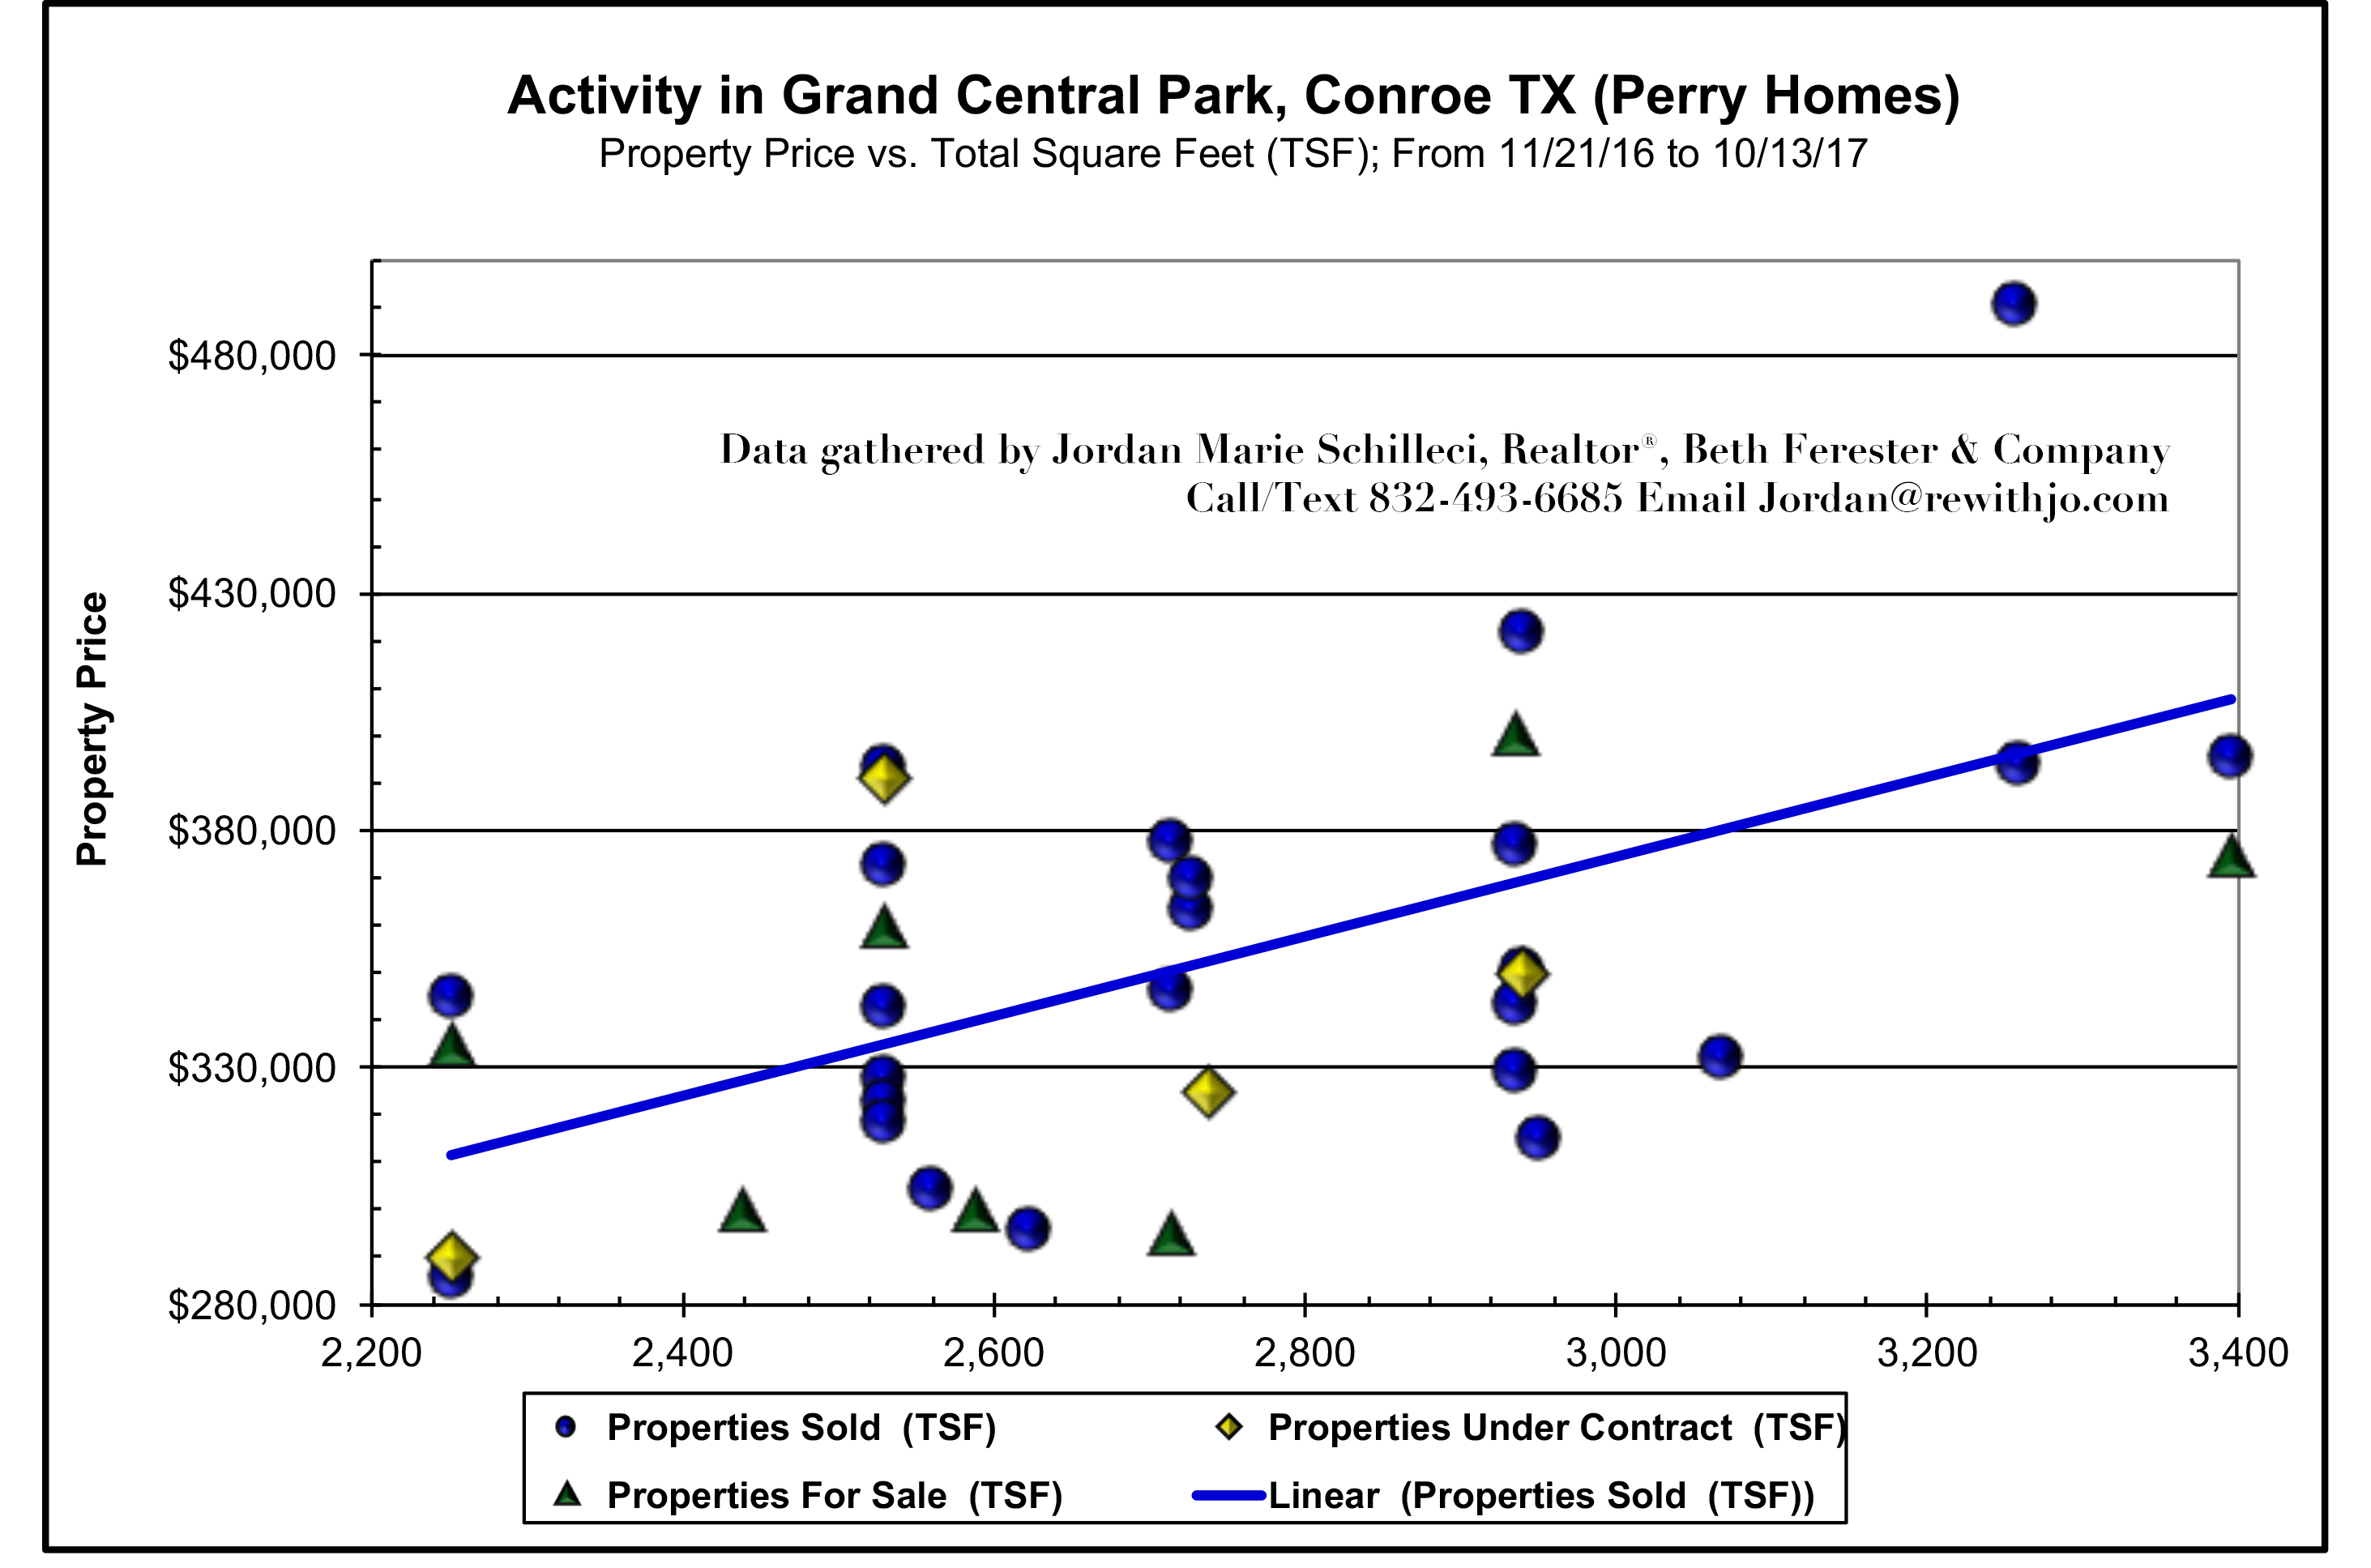 Perry-Homes-Grand-Central-Park-Conroe-Texas-Mid-October-2017-Market-Update